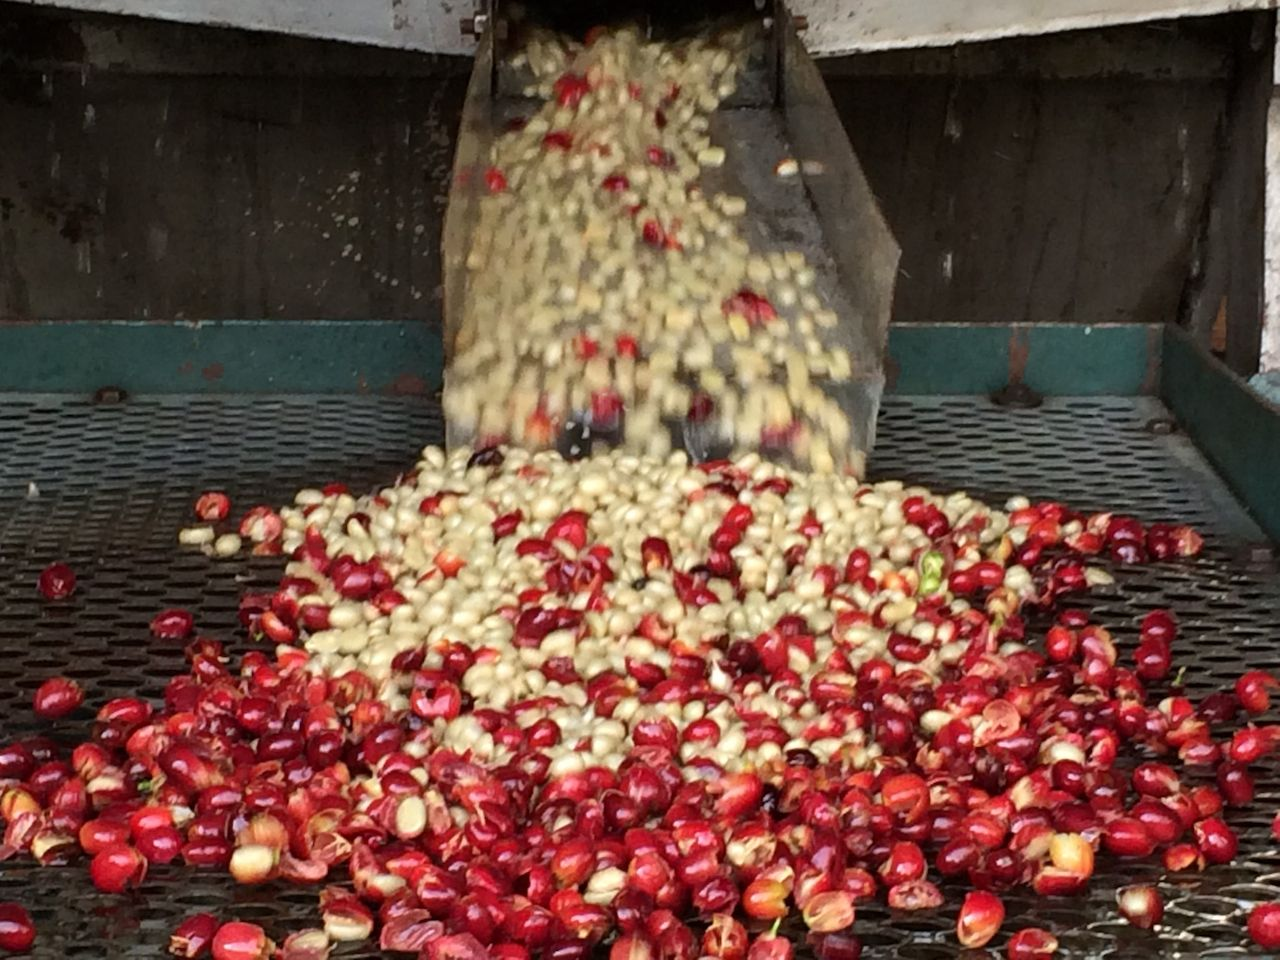 Pulped berries stream out as the machines de-husk the berry and the bean.